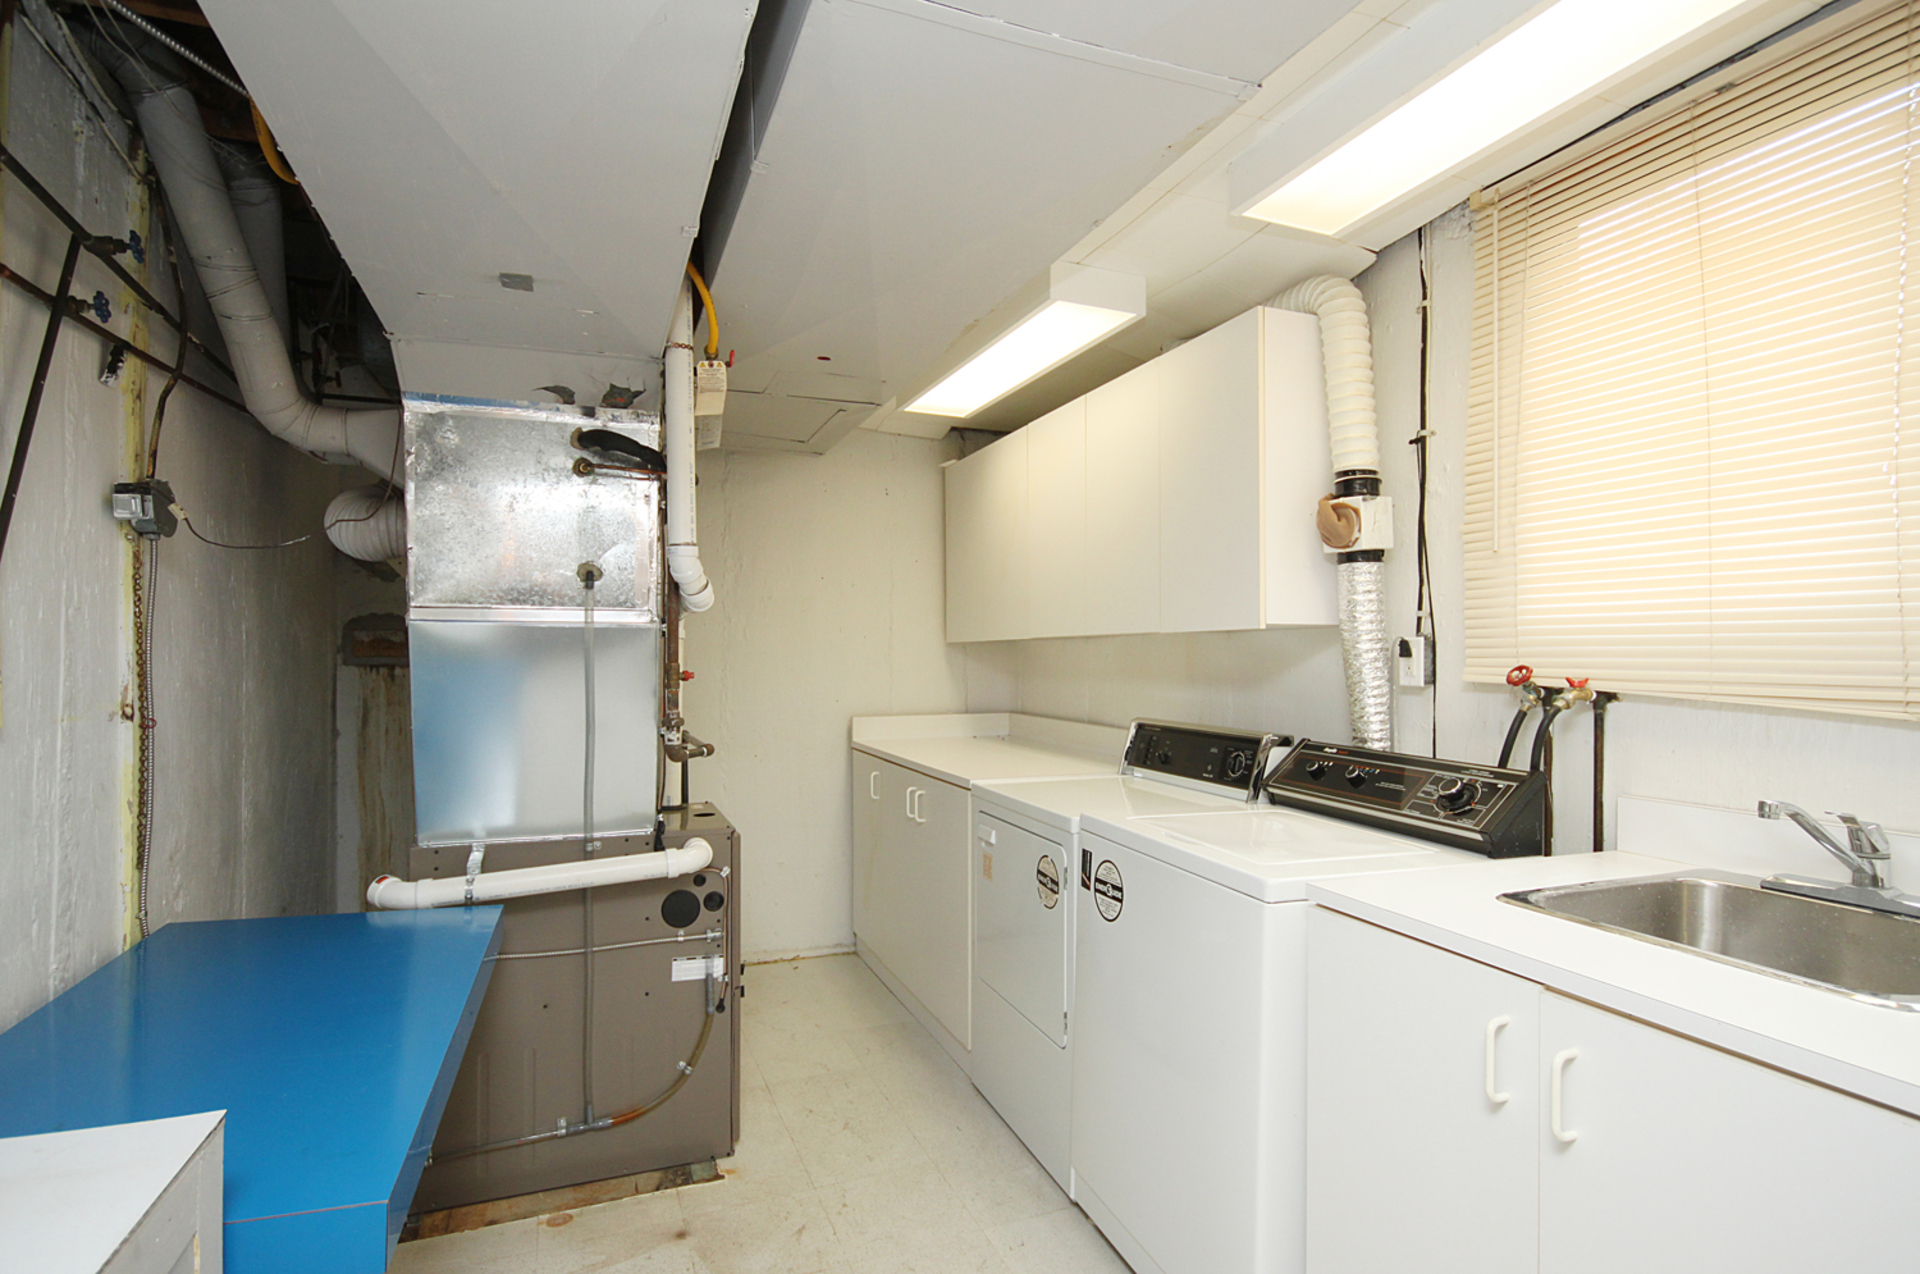 Laundry Room at 16 Bradgate Road, Banbury-Don Mills, Toronto